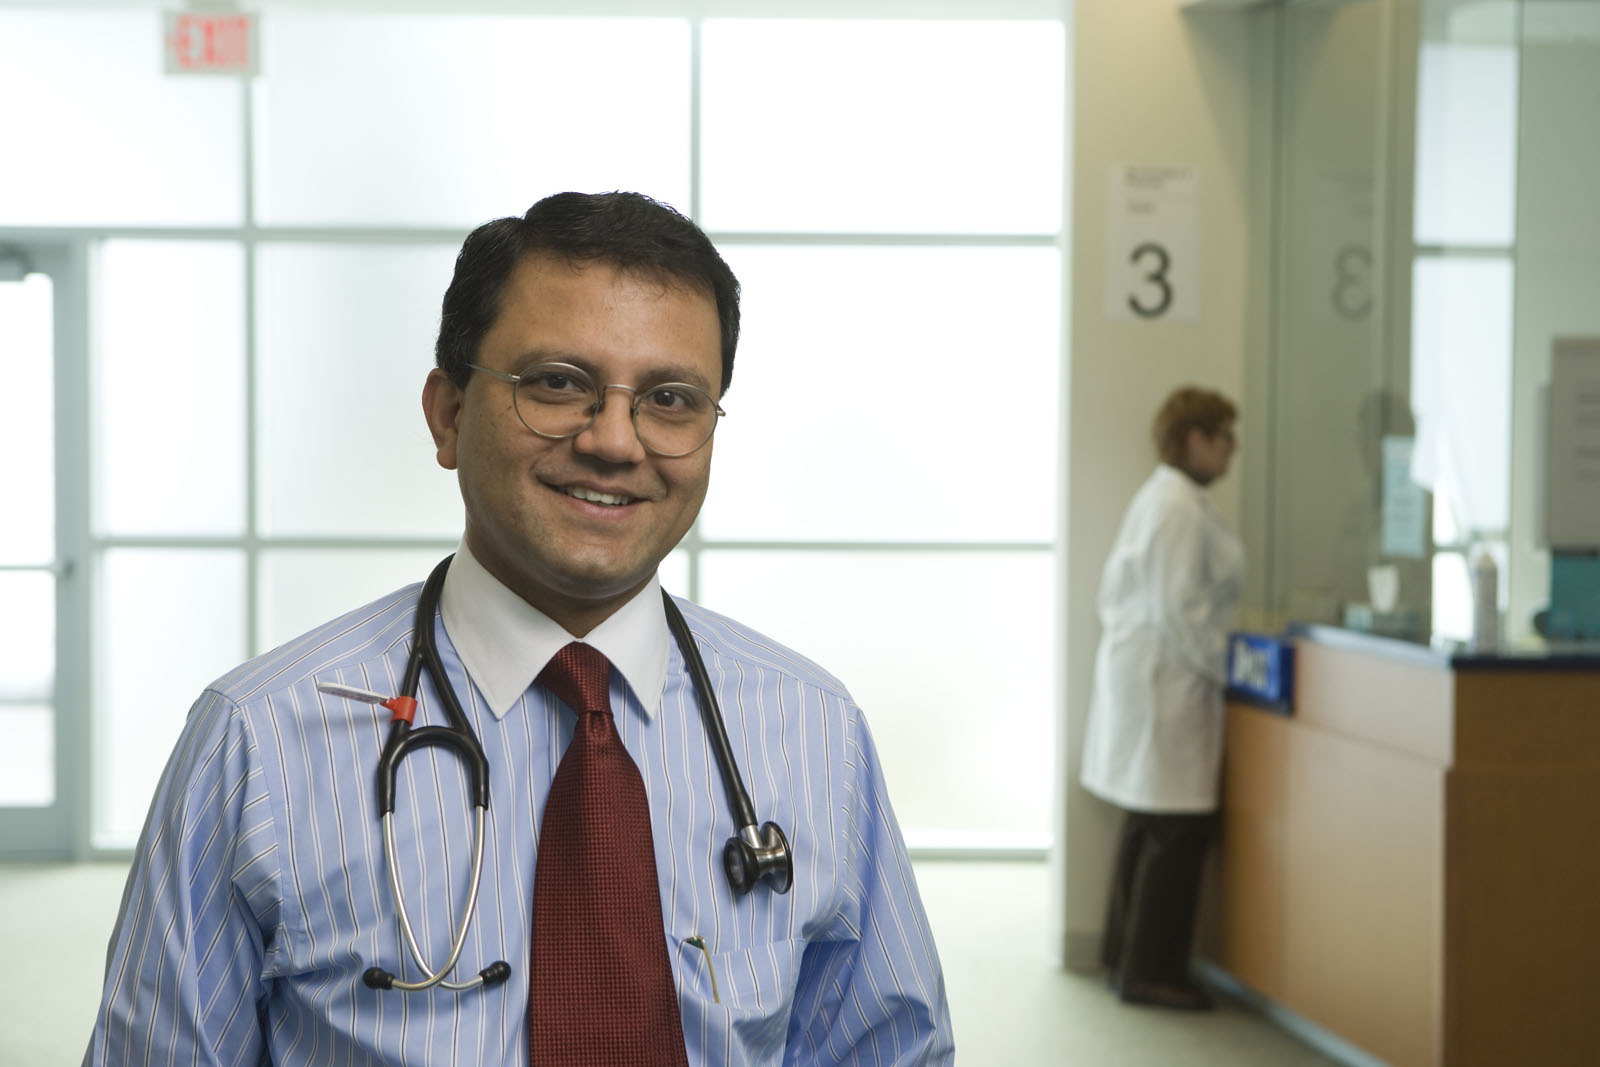 Dr. Santhanam Lakshminarayanan has been named the new Division Chief of Rheumatology at UConn Health. (Photo by Lanny Nagler)